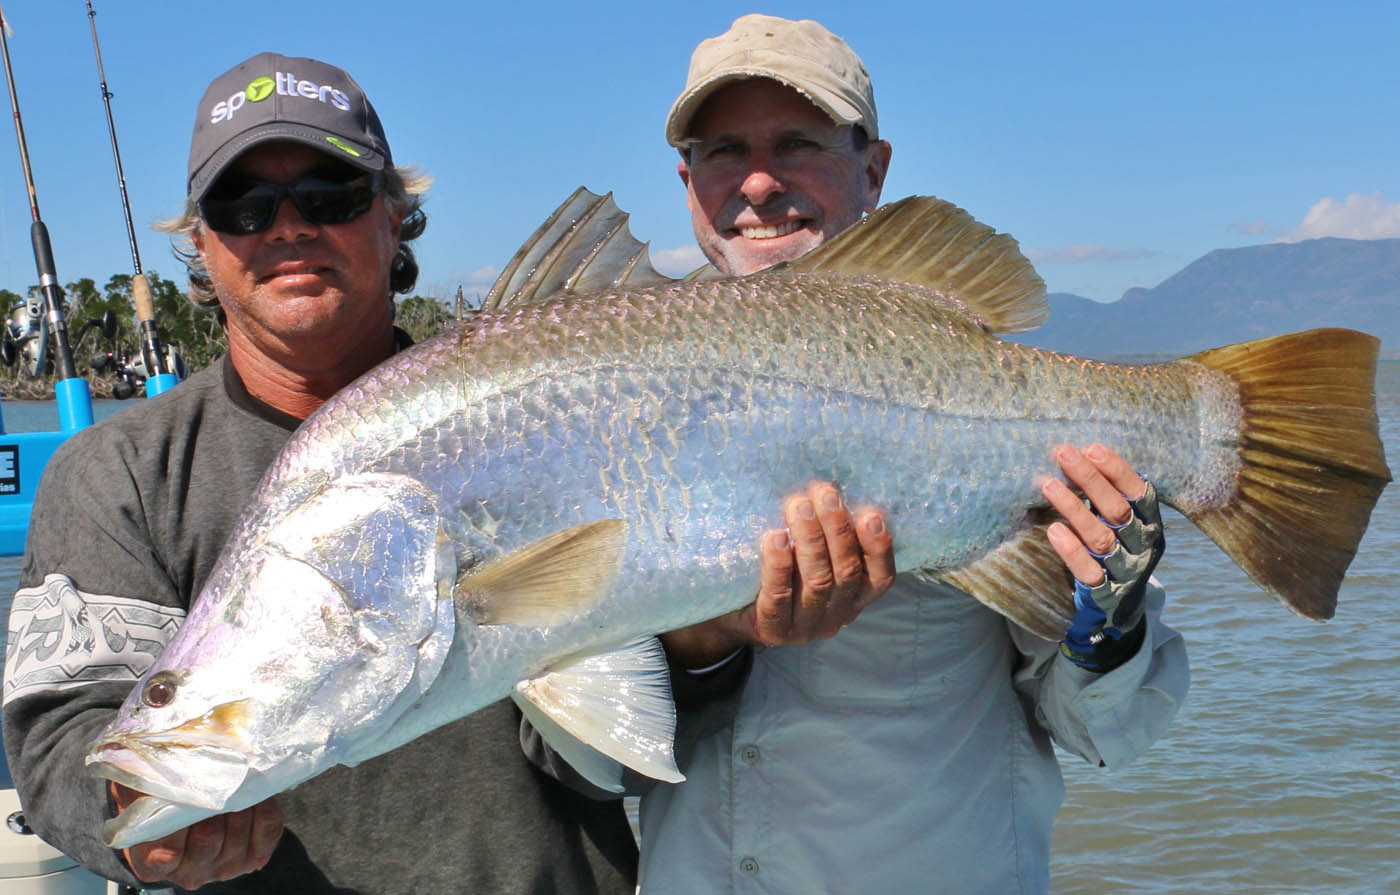 another metre barra with Ryan Moody and client